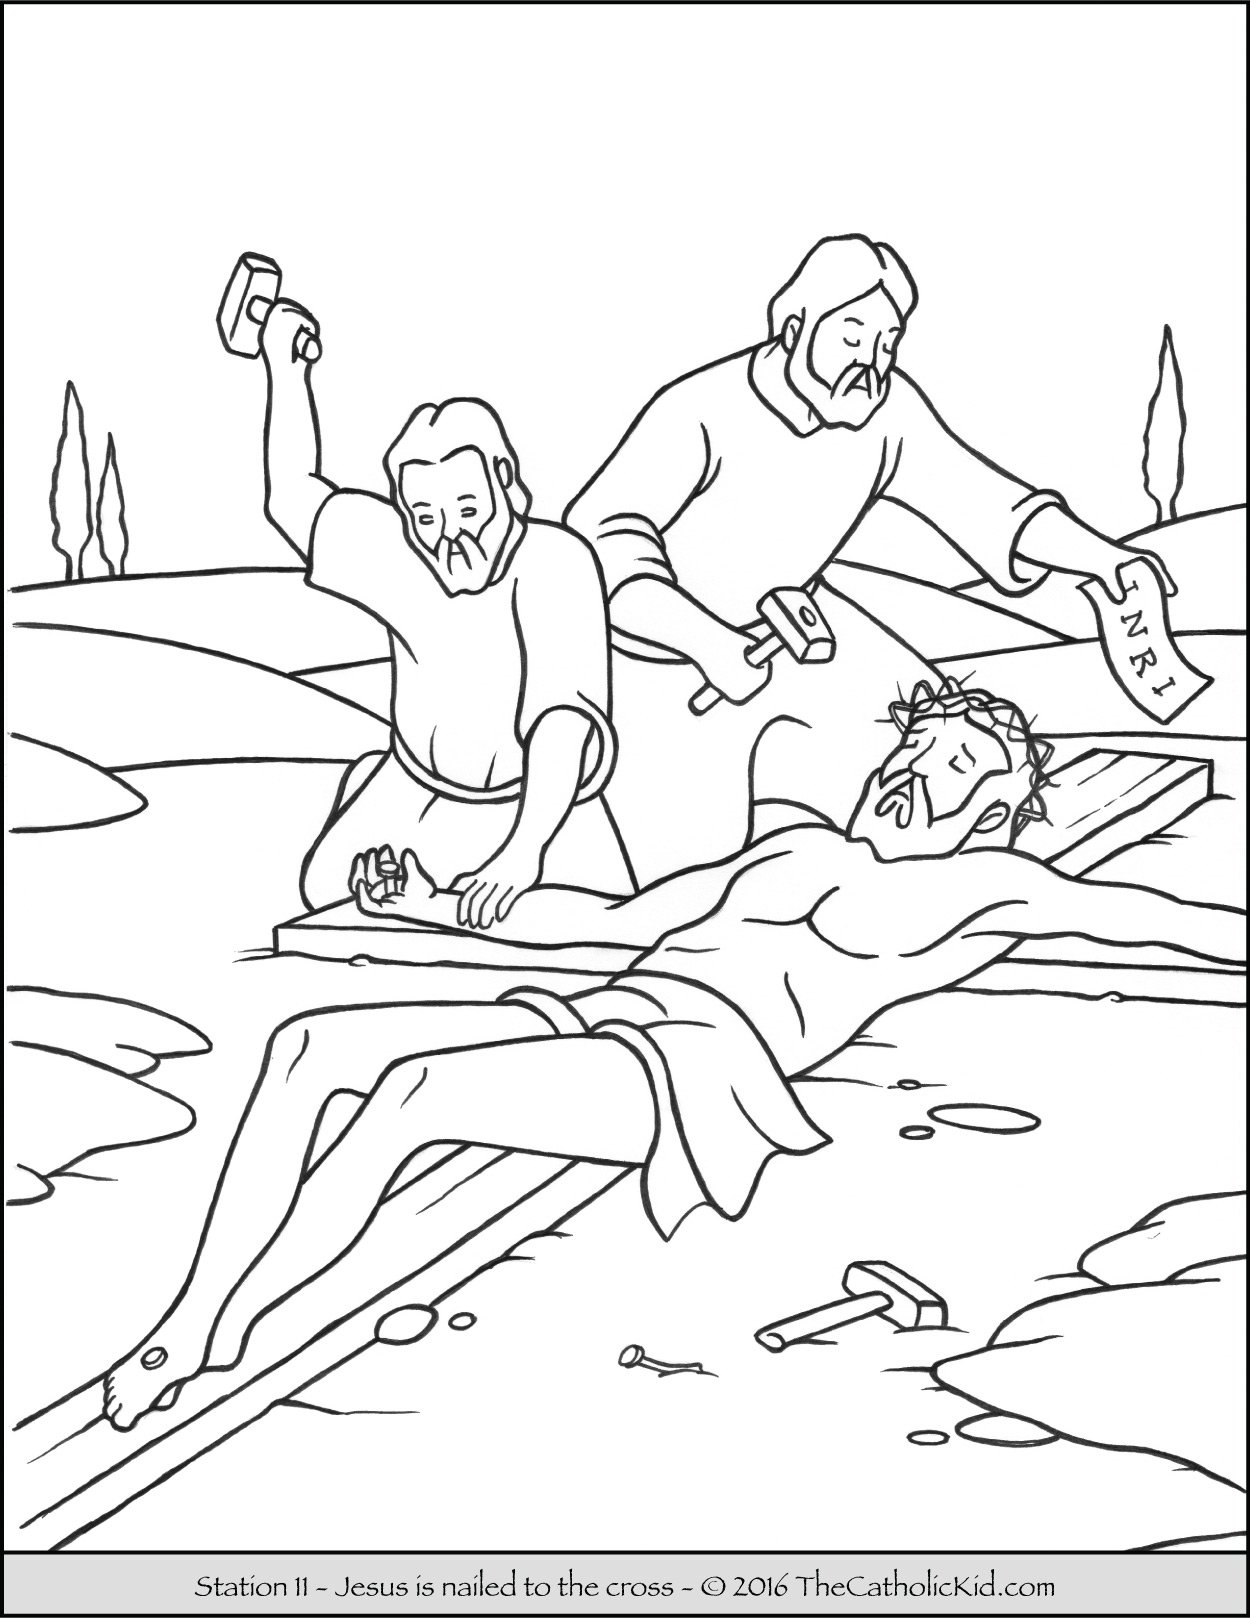 Stations Of The Cross Coloring Pages Amusing Stations Of The Cross Coloring Pages  The Catholic Kid Decorating Design